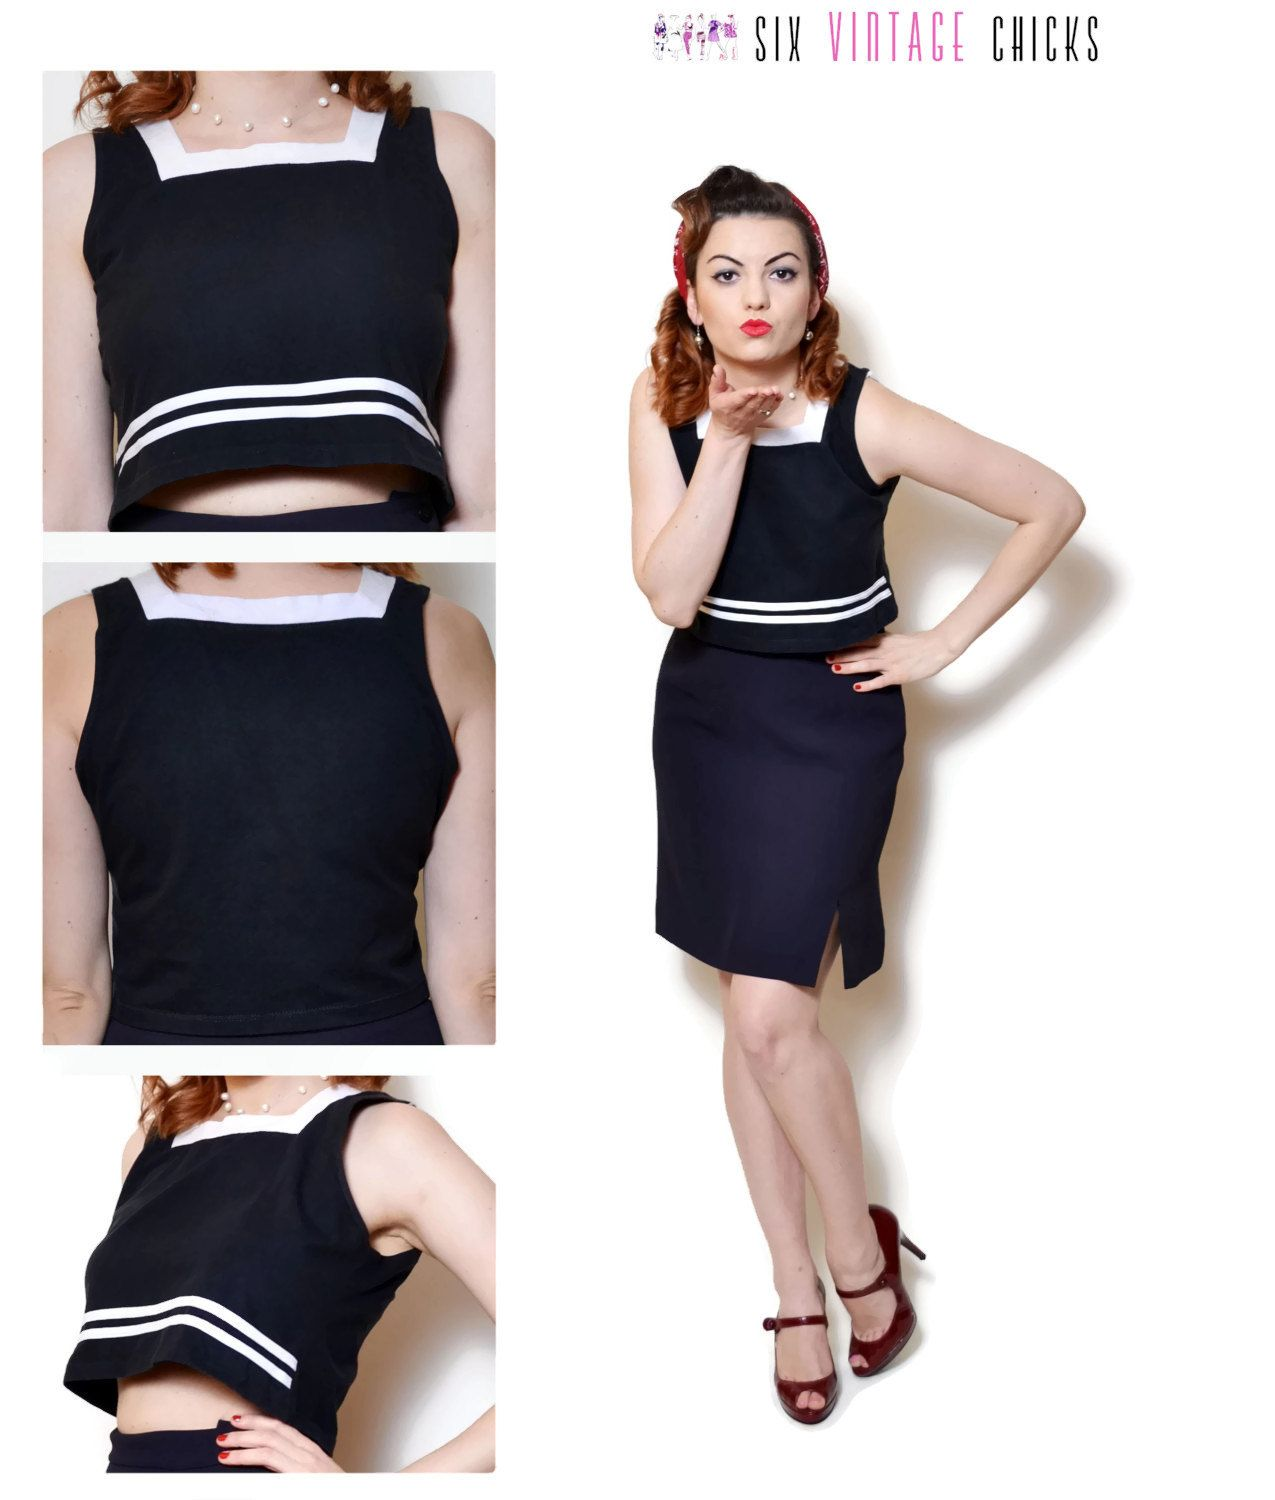 36b879c2ef crop tops for women black and white sexy tops nautical shirt pin up top  retro clothing 80s clothing womens tops sleeveless top resort wear by ...